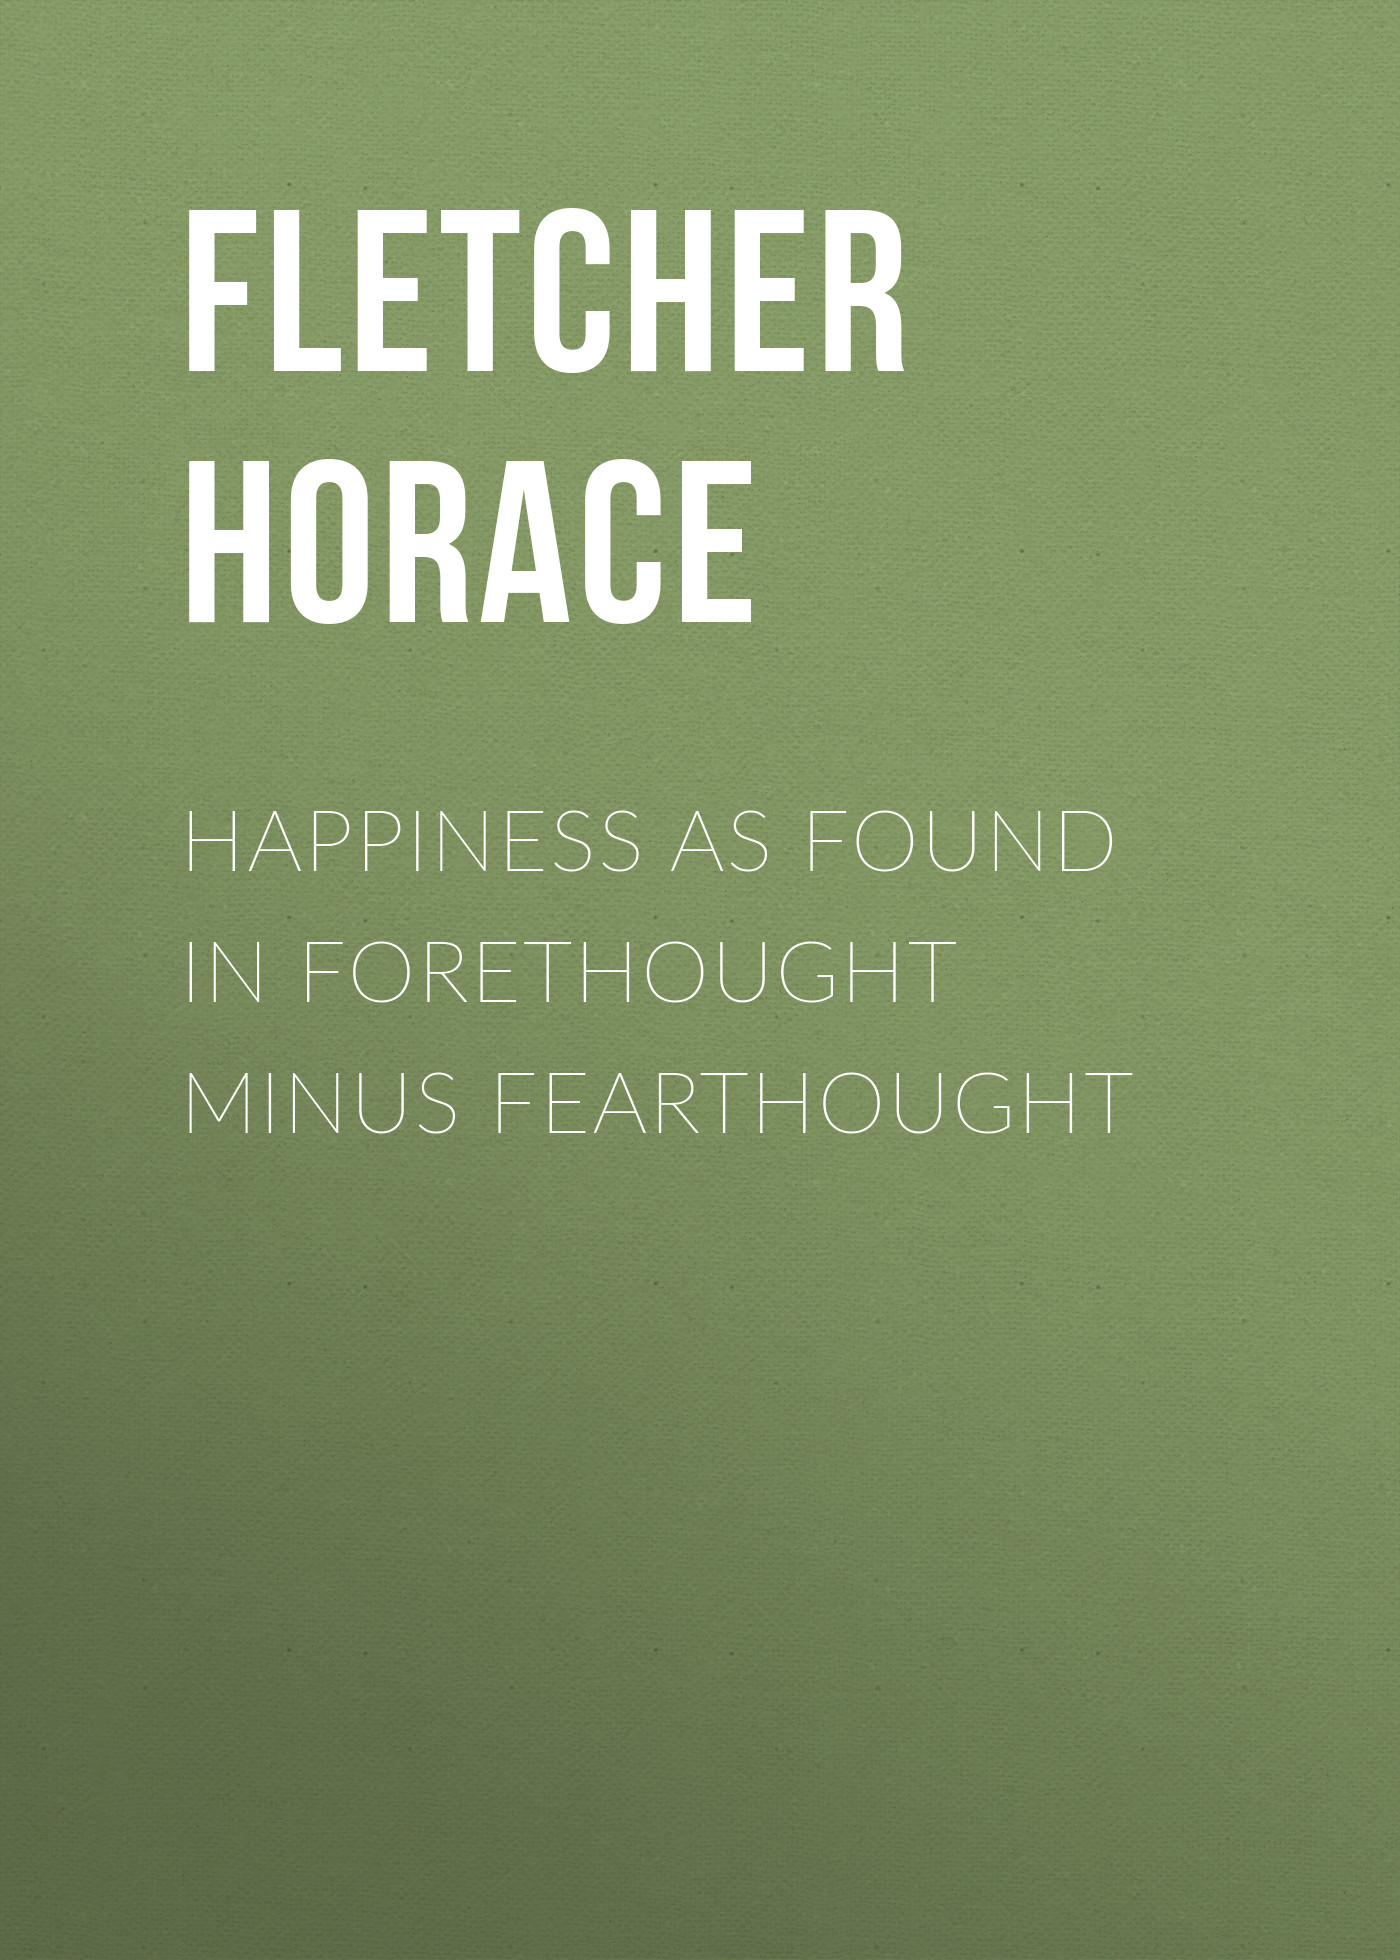 Fletcher Horace Happiness as Found in Forethought Minus Fearthought fletcher horace the new glutton or epicure